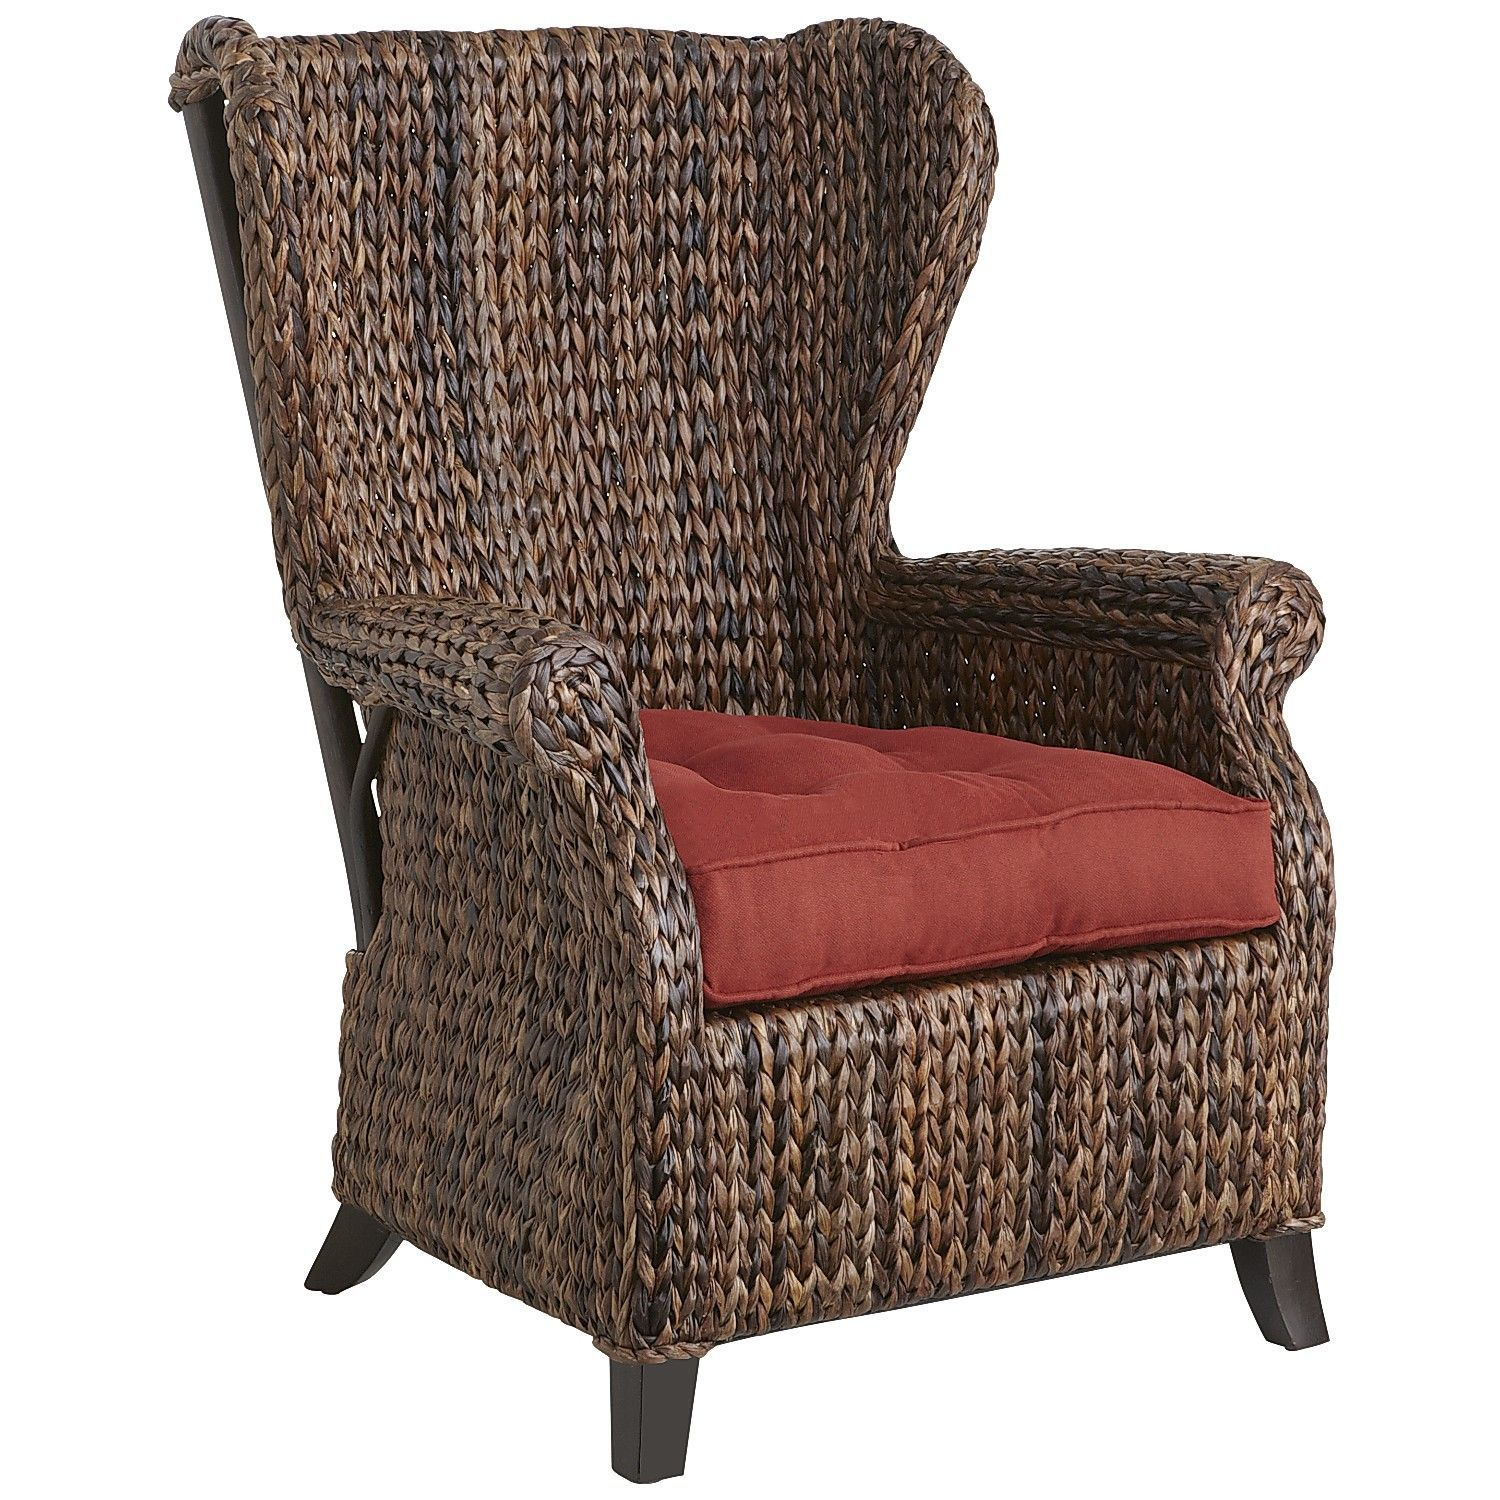 Wingback Recliner Chair Canada Canvas Covers Nz Graciosa Mocha Brown Wicker Wing Home Living